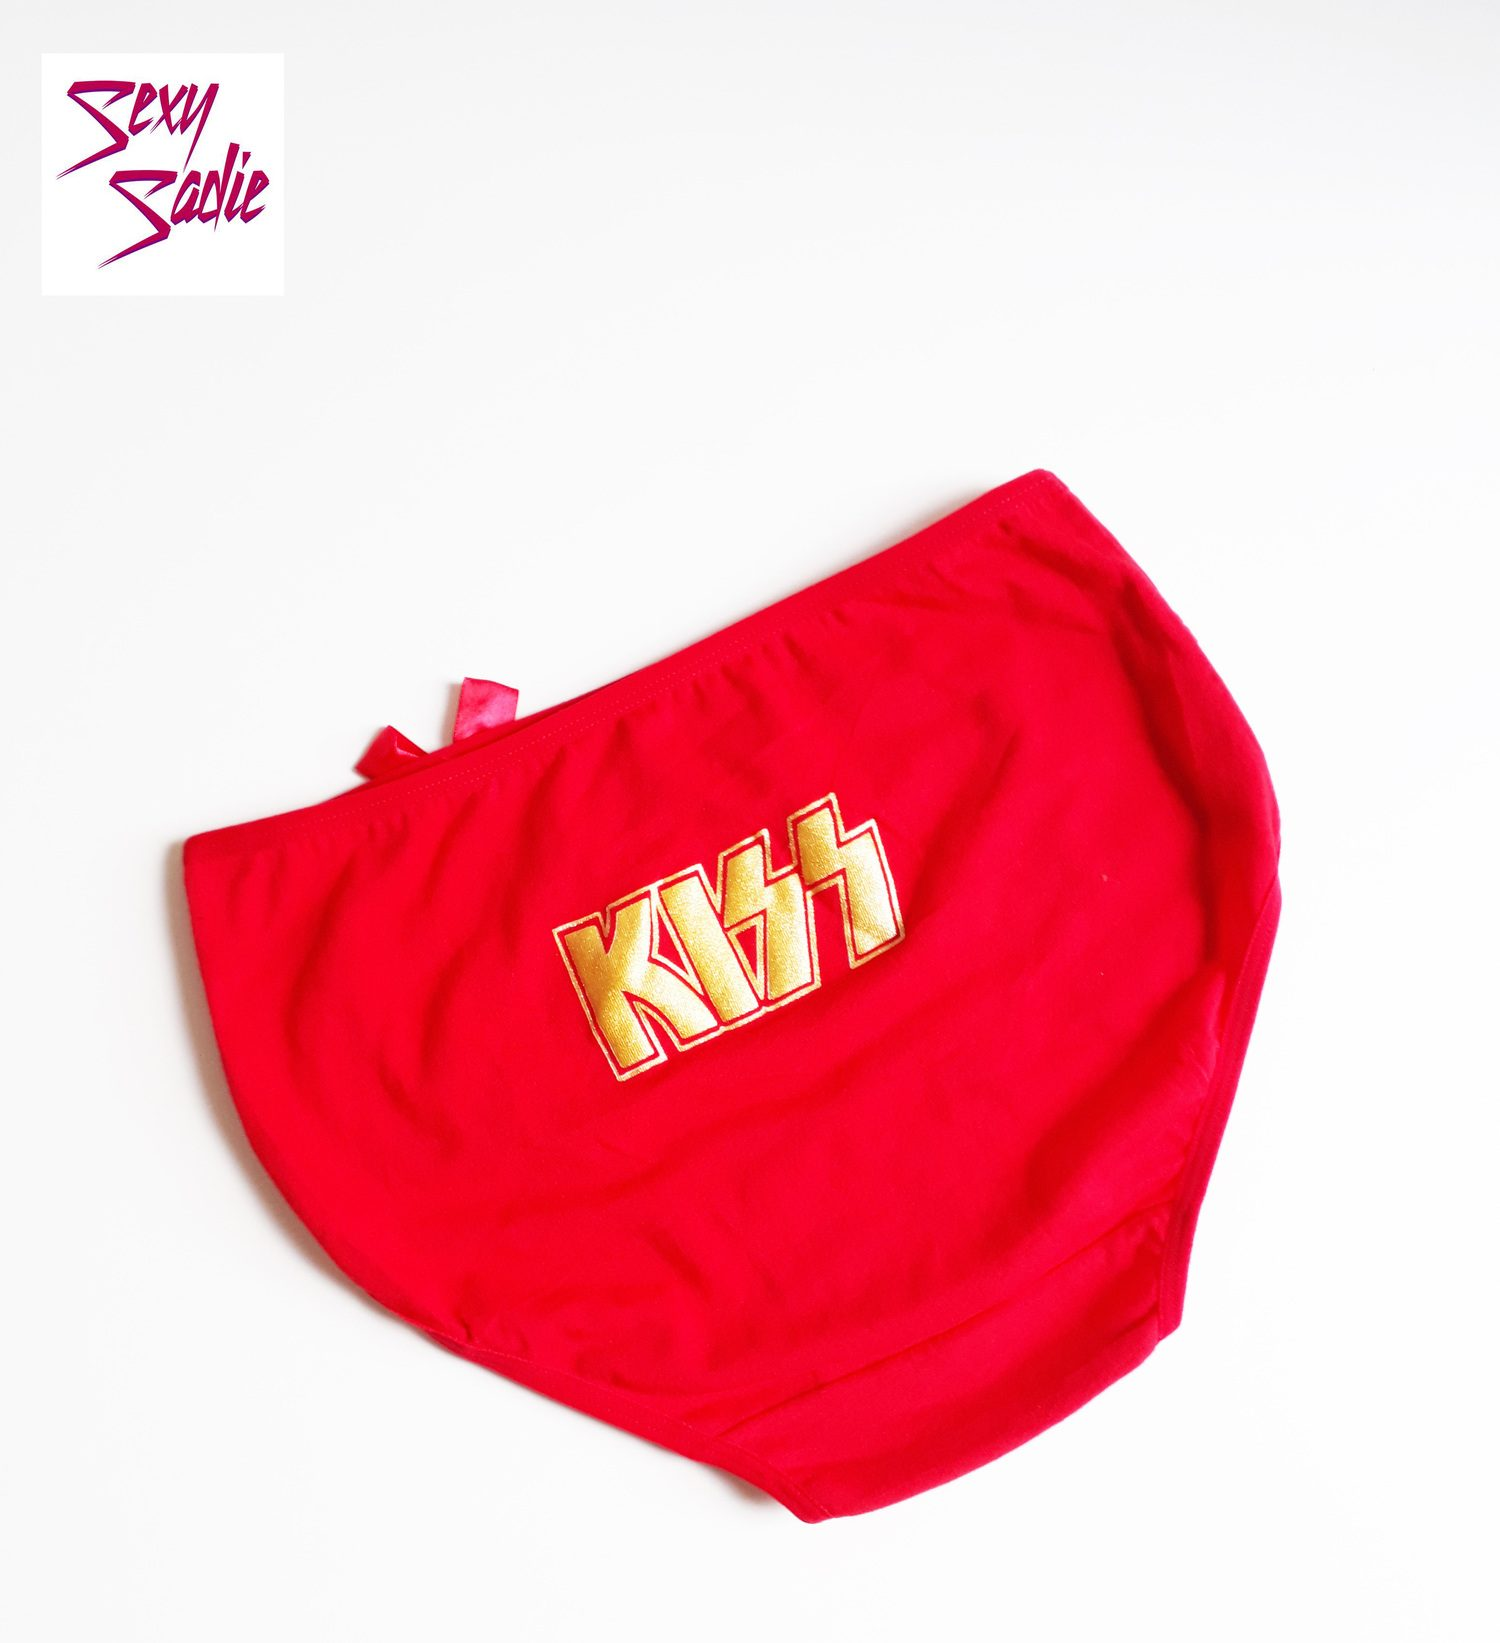 Calcinha Hot Pants - Kiss - Sexy Sadie Underwear